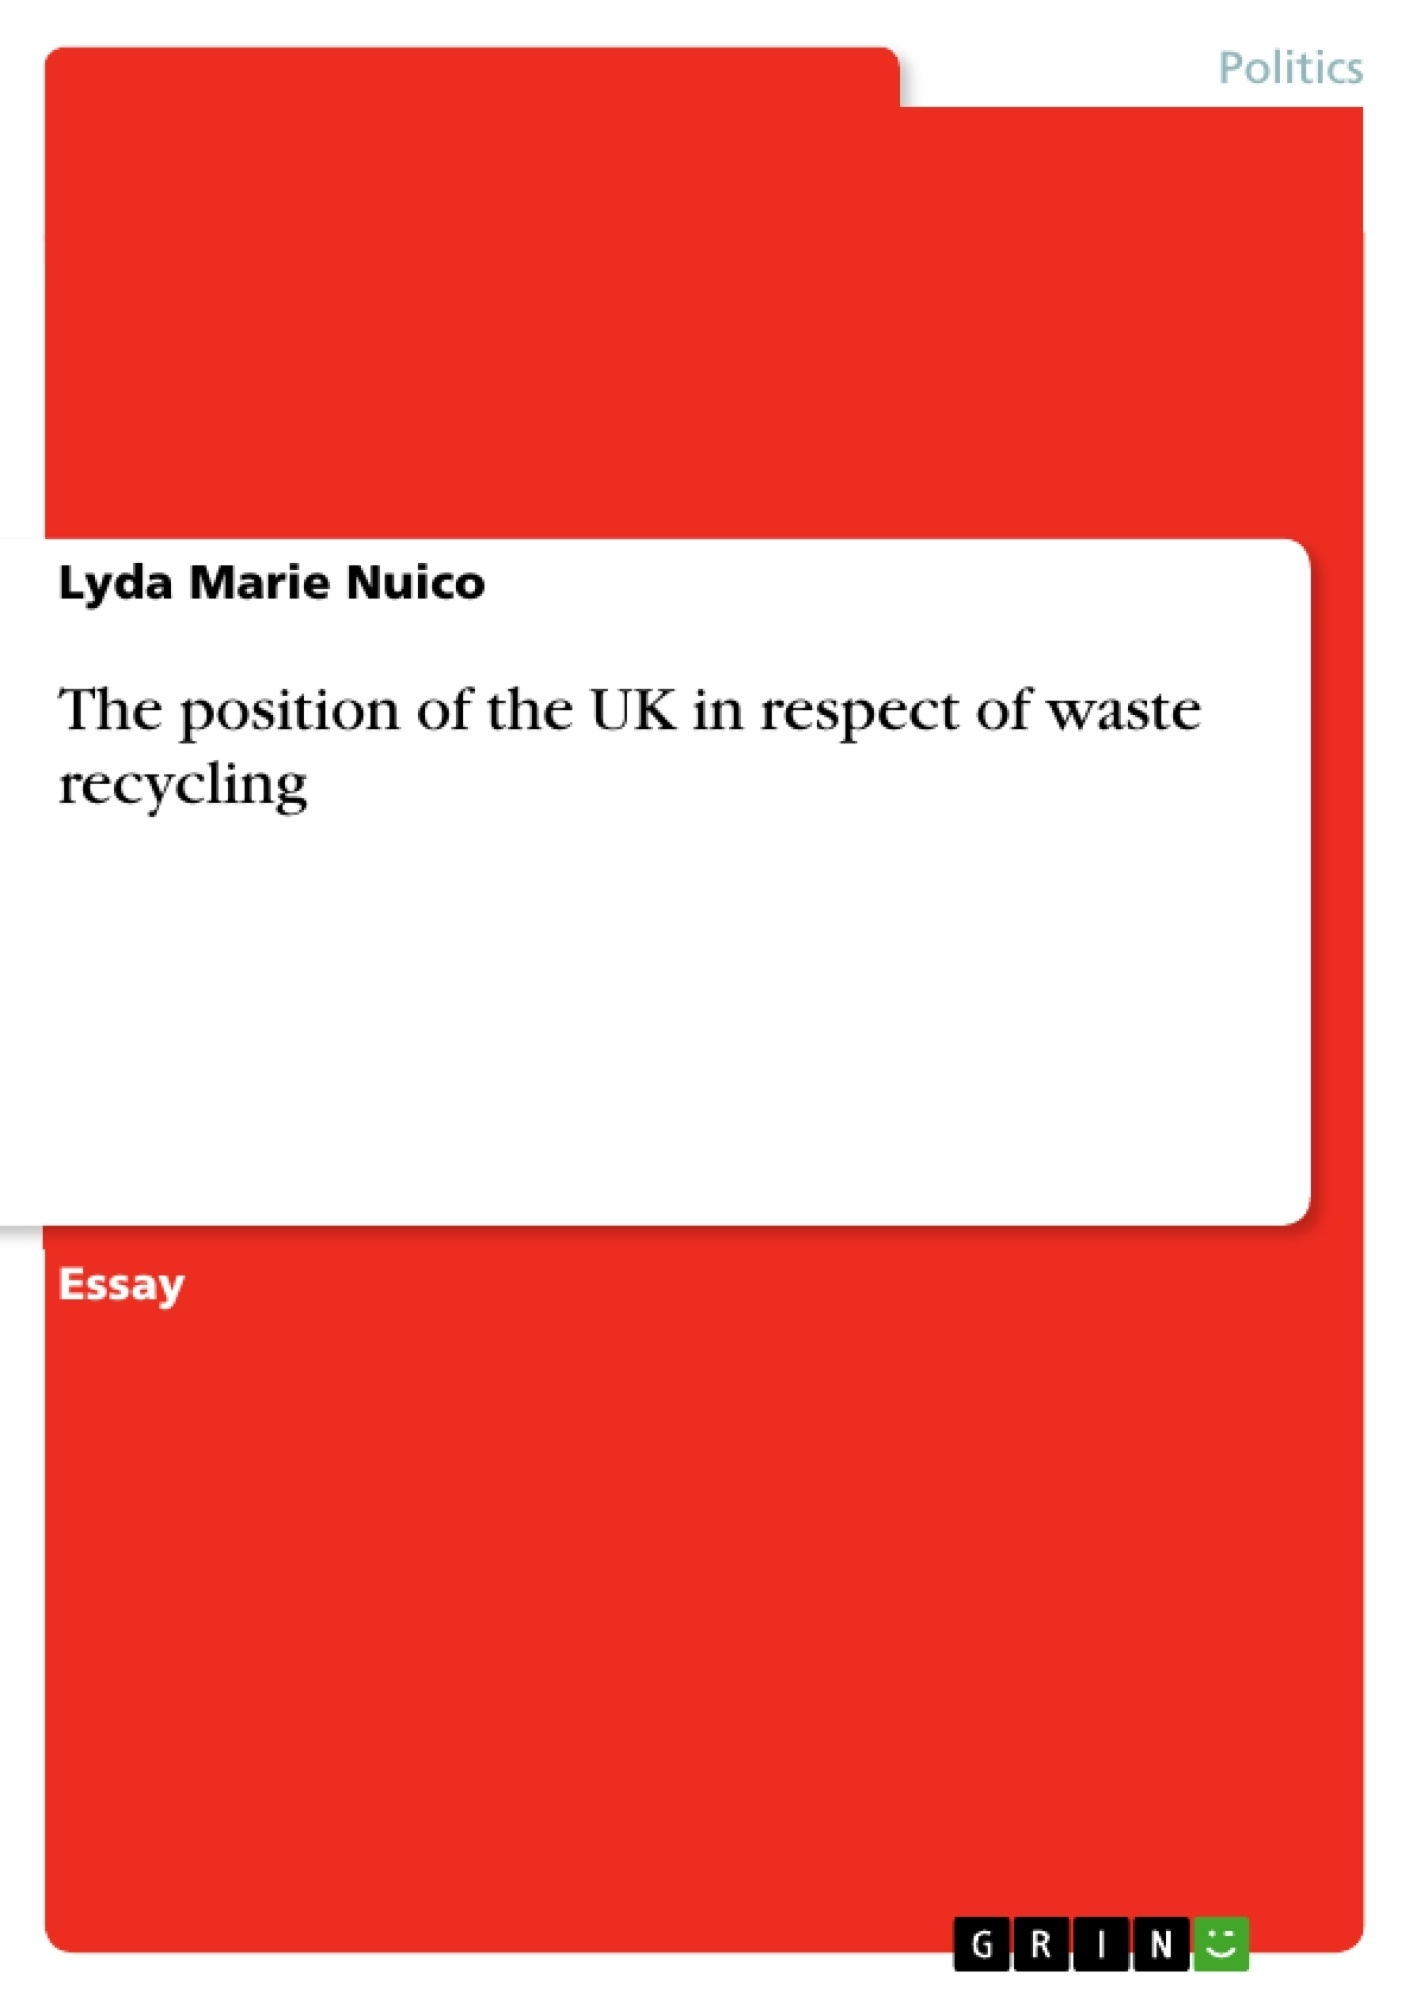 Title: The position of the UK in respect of waste recycling